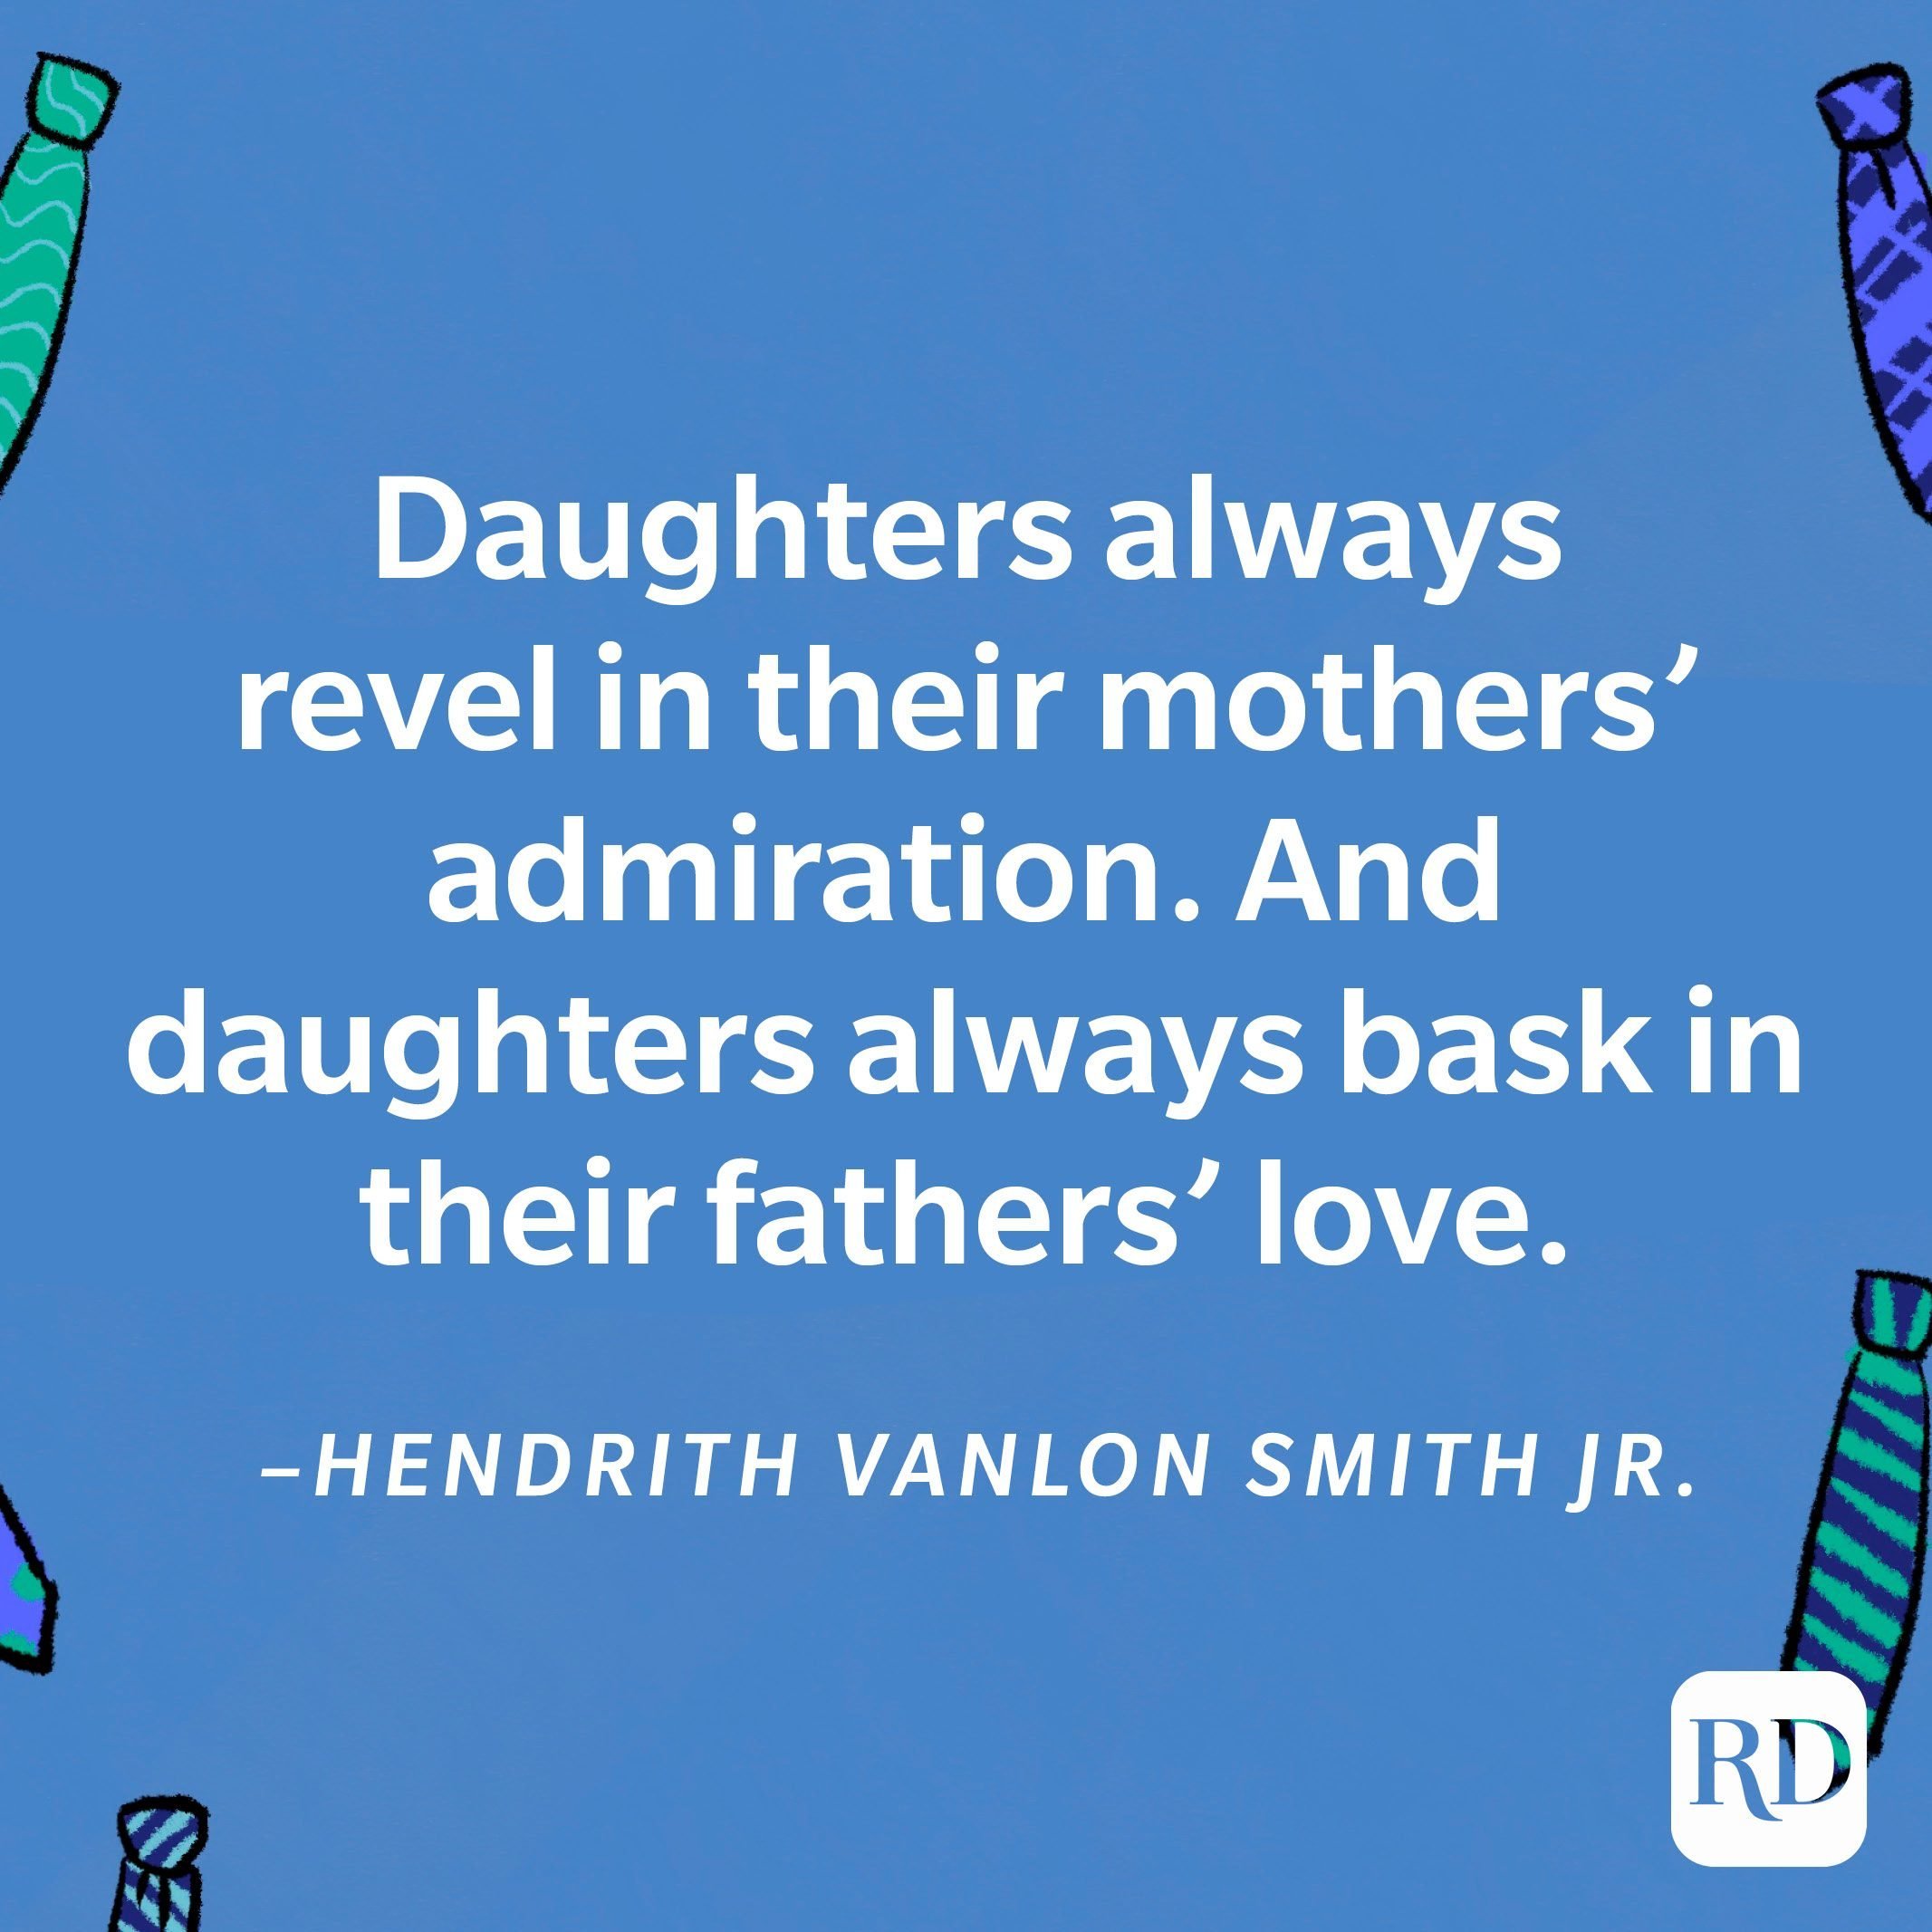 """""""Daughters always revel in their mothers' admiration. And daughters always bask in their fathers' love.""""—Hendrith Vanlon Smith Jr. 23"""